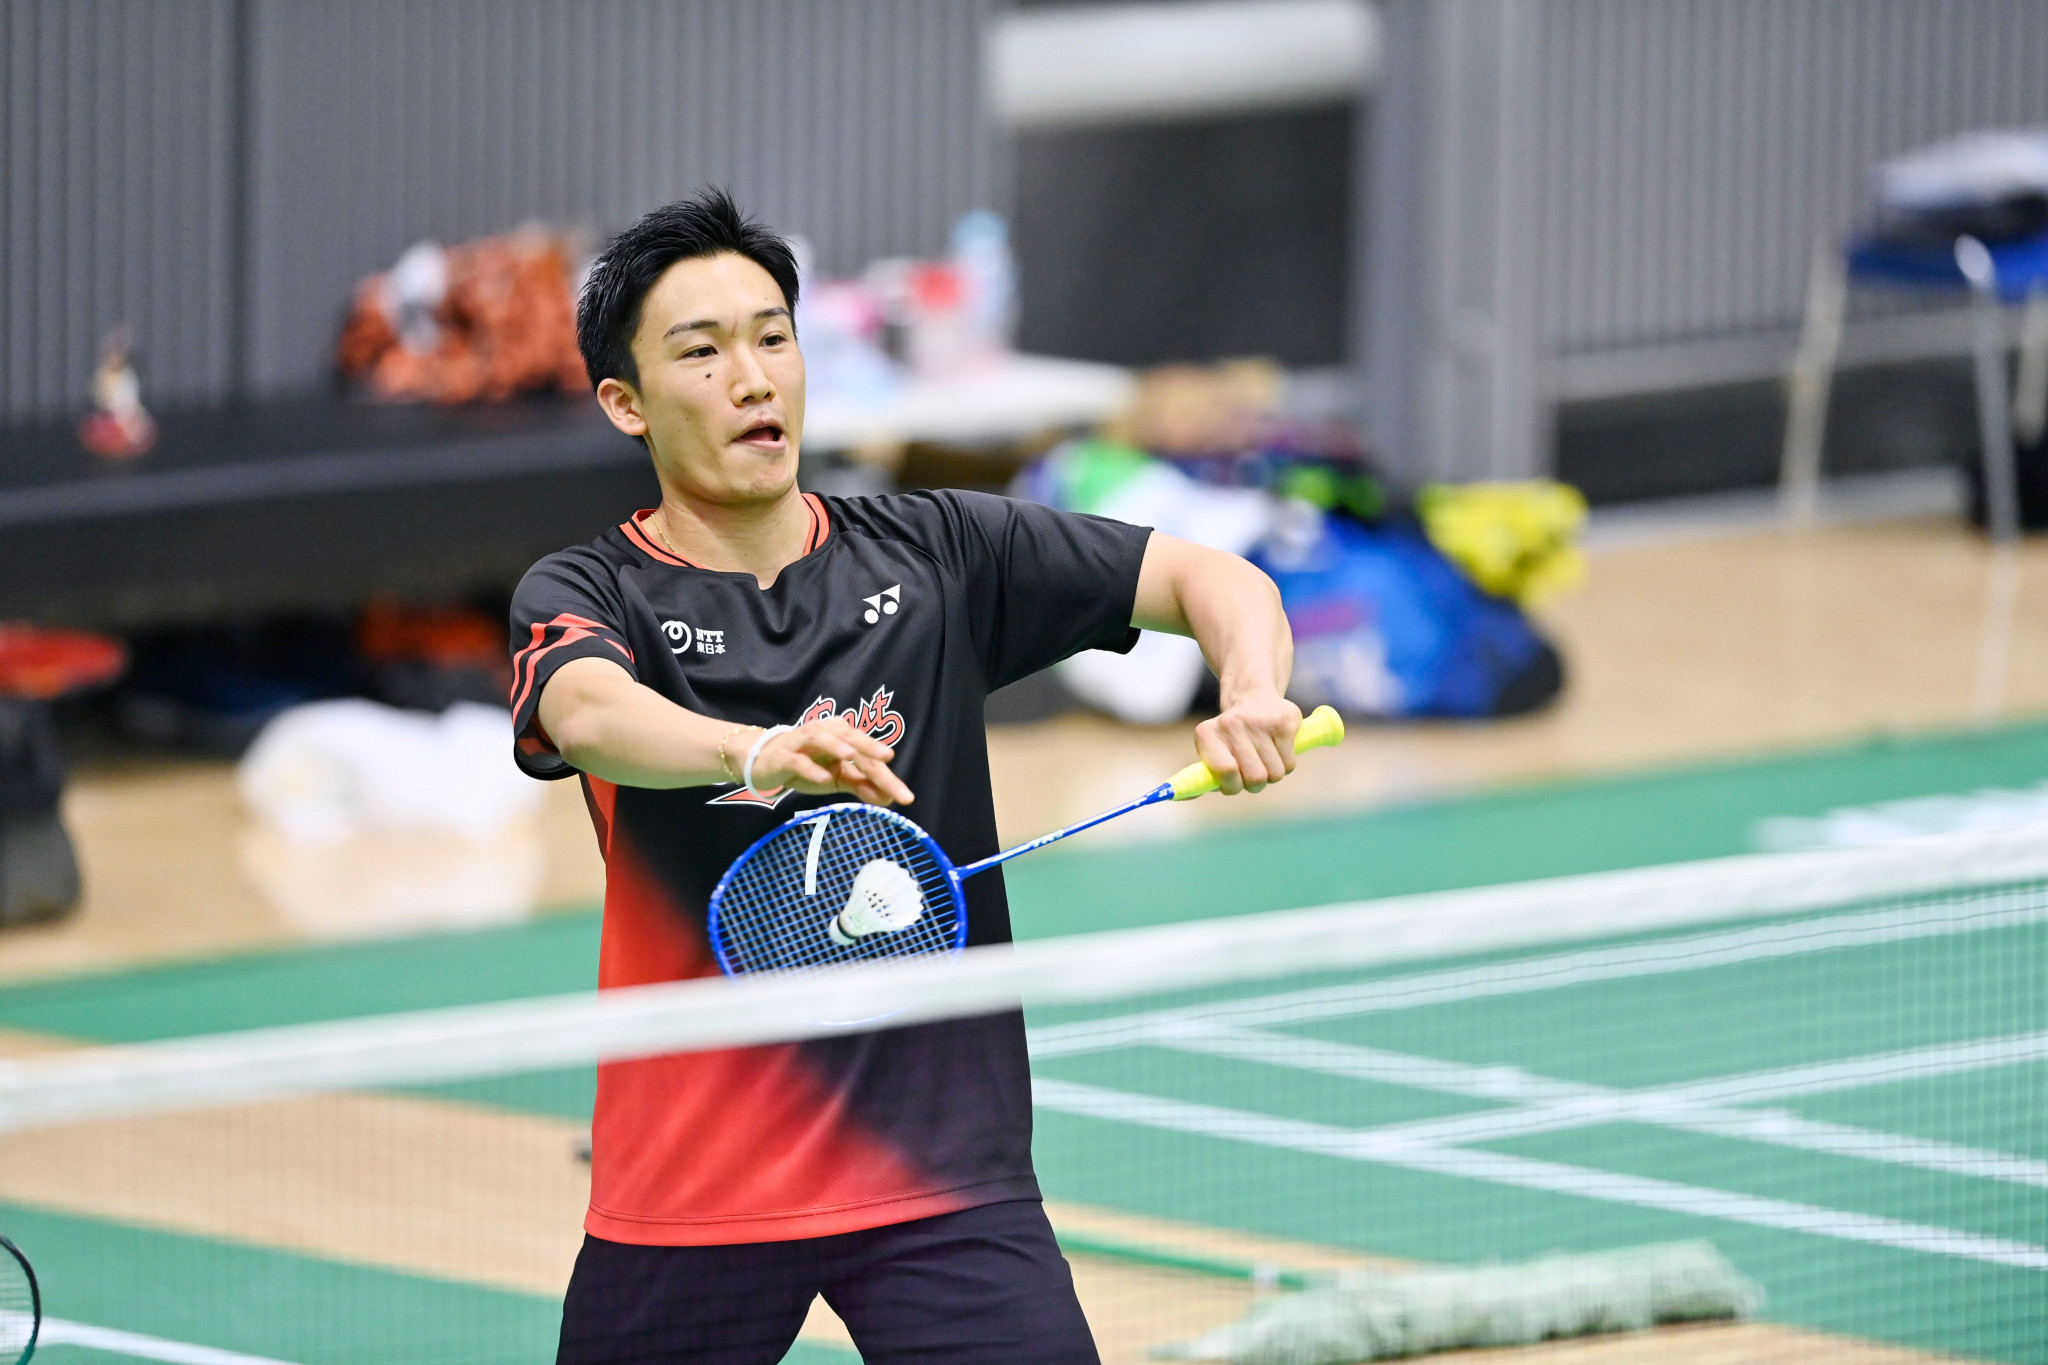 Momota aiming for home gold at Tokyo 2020 after recovering from crash